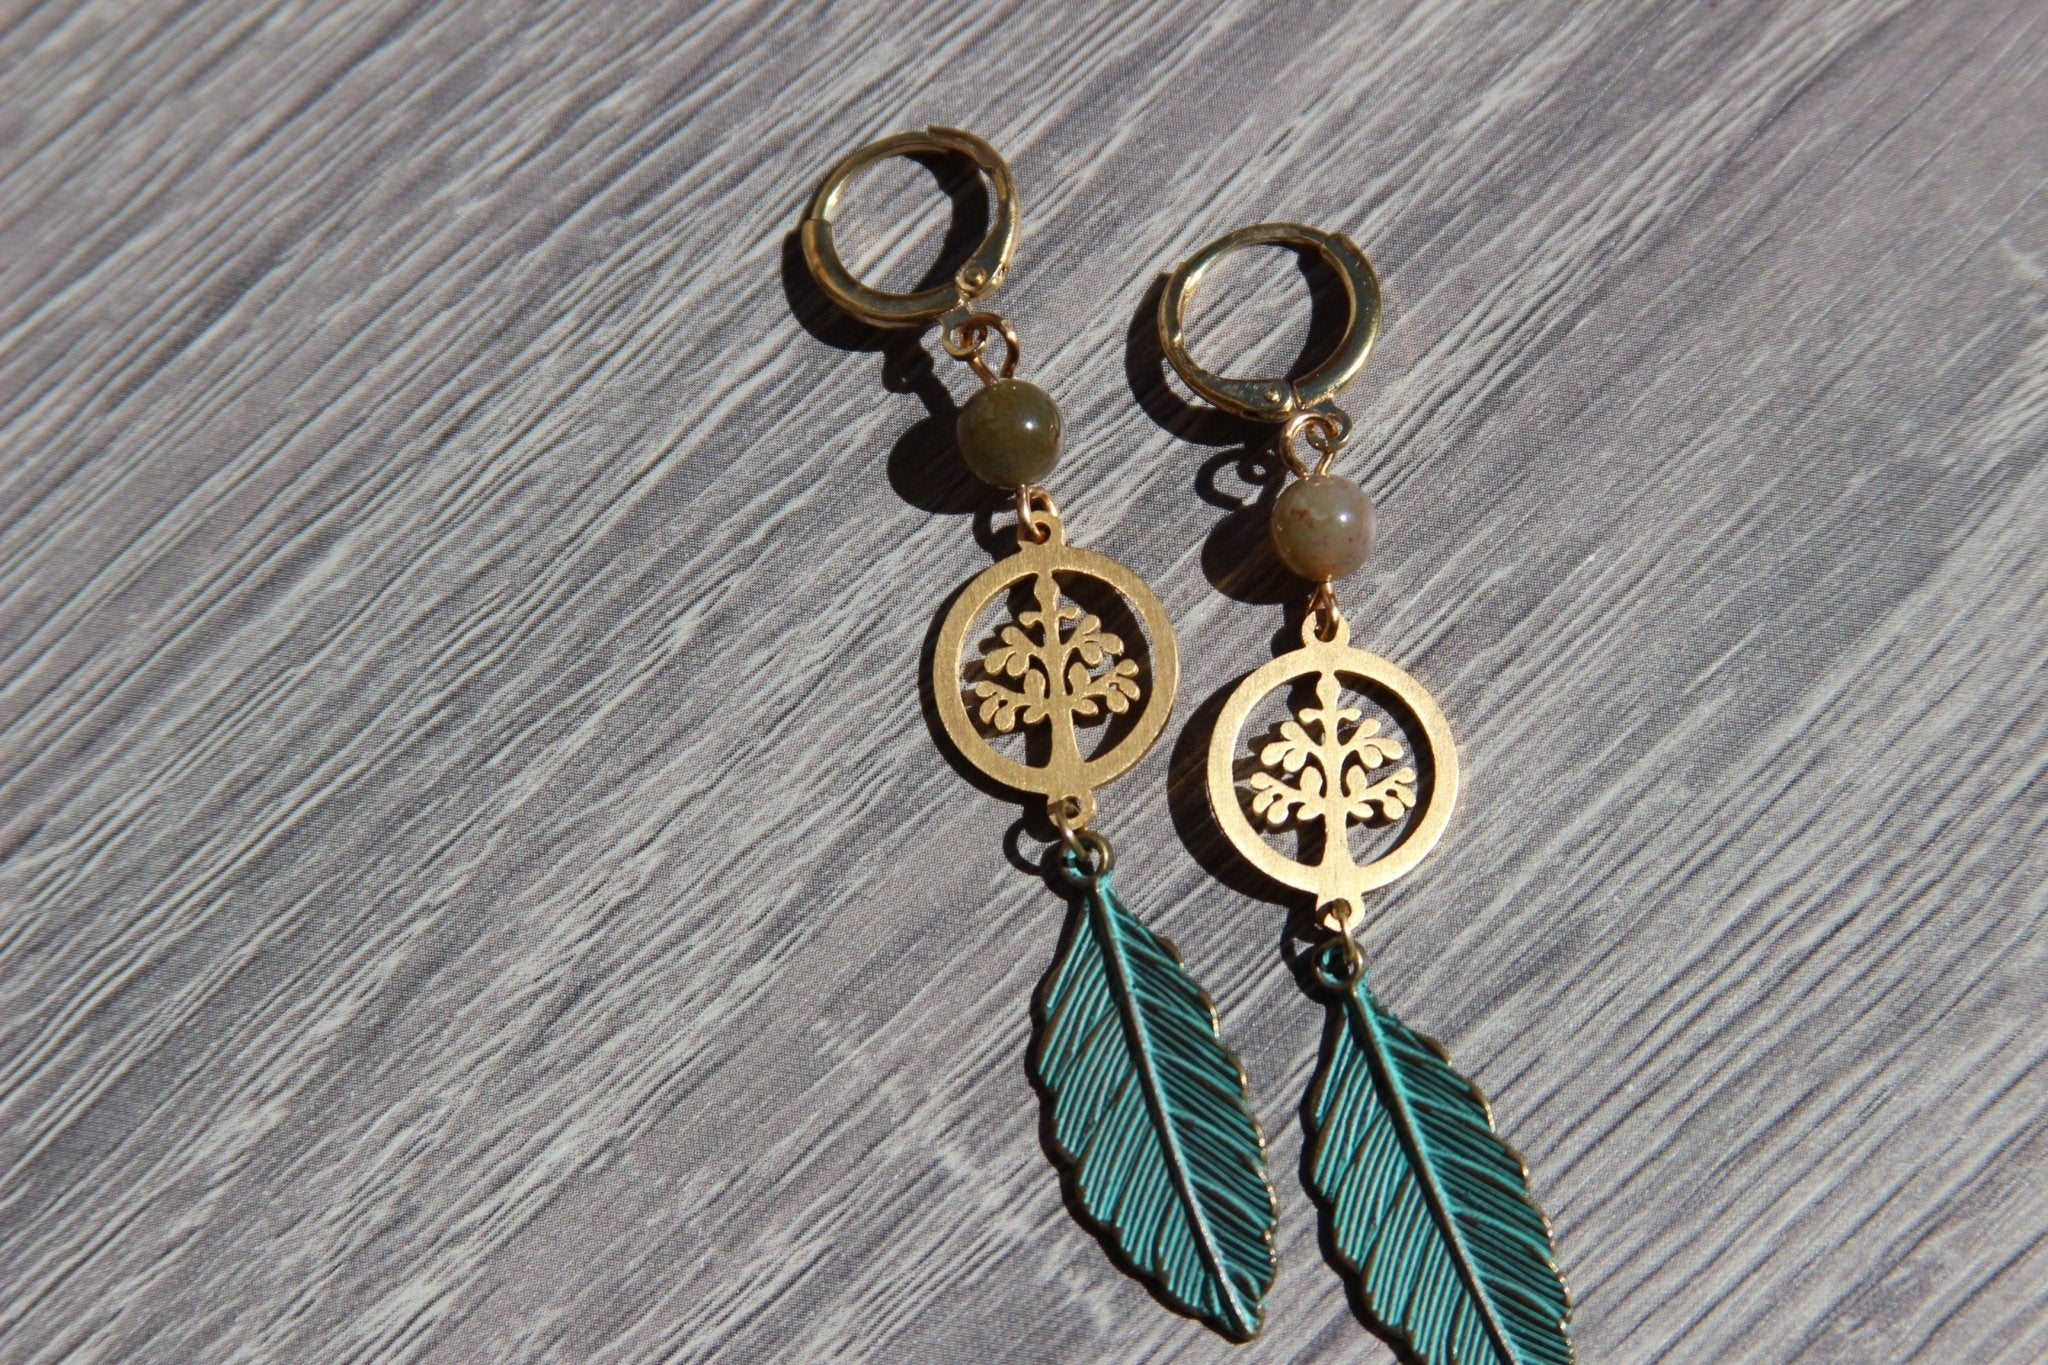 Moss Agate Tree of Life Earrings - We Love Brass